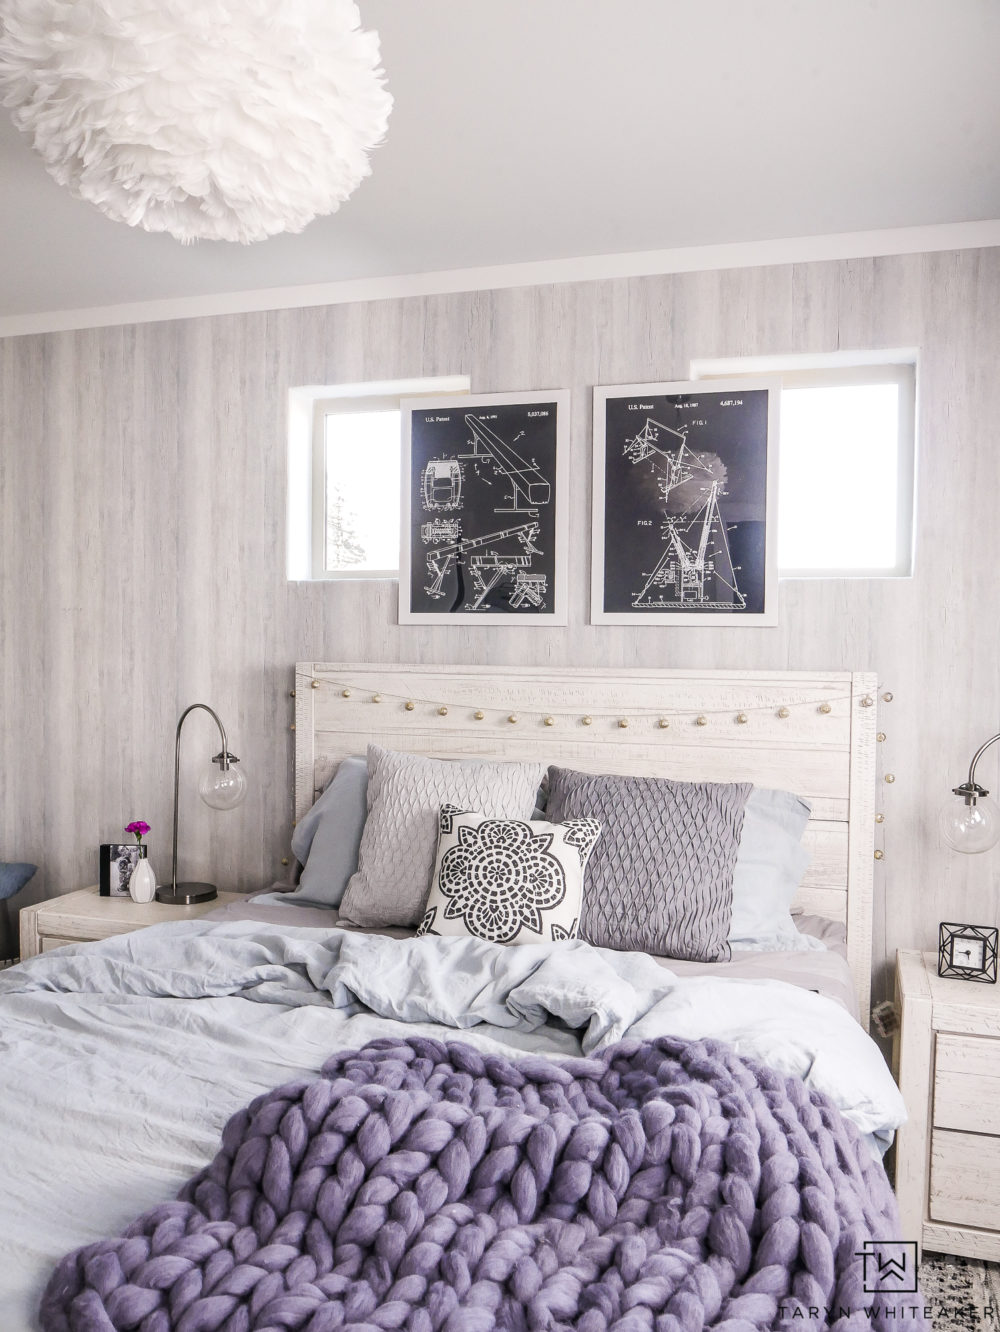 Modern boho girl's bedroom! Love all the soft texture and pops of blue. The textured wallpaper is such a great accent wall.